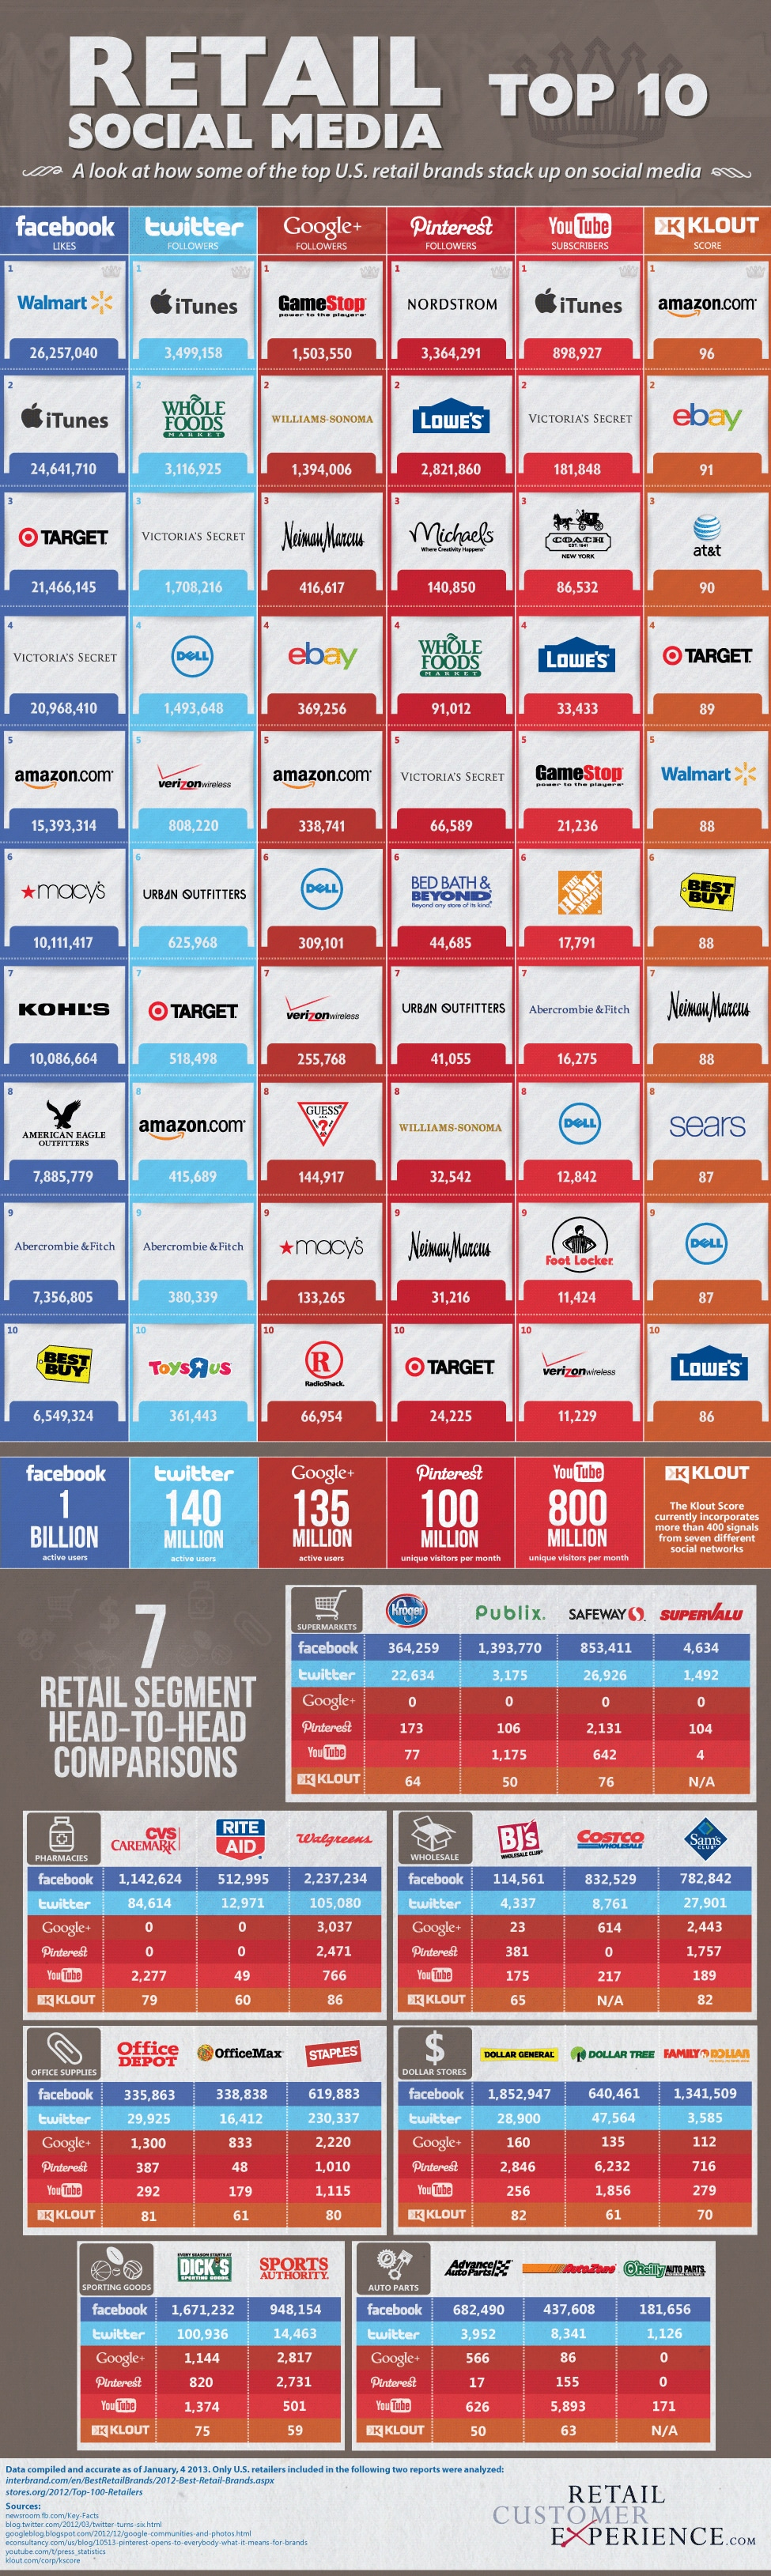 top-10-retailers-infographic